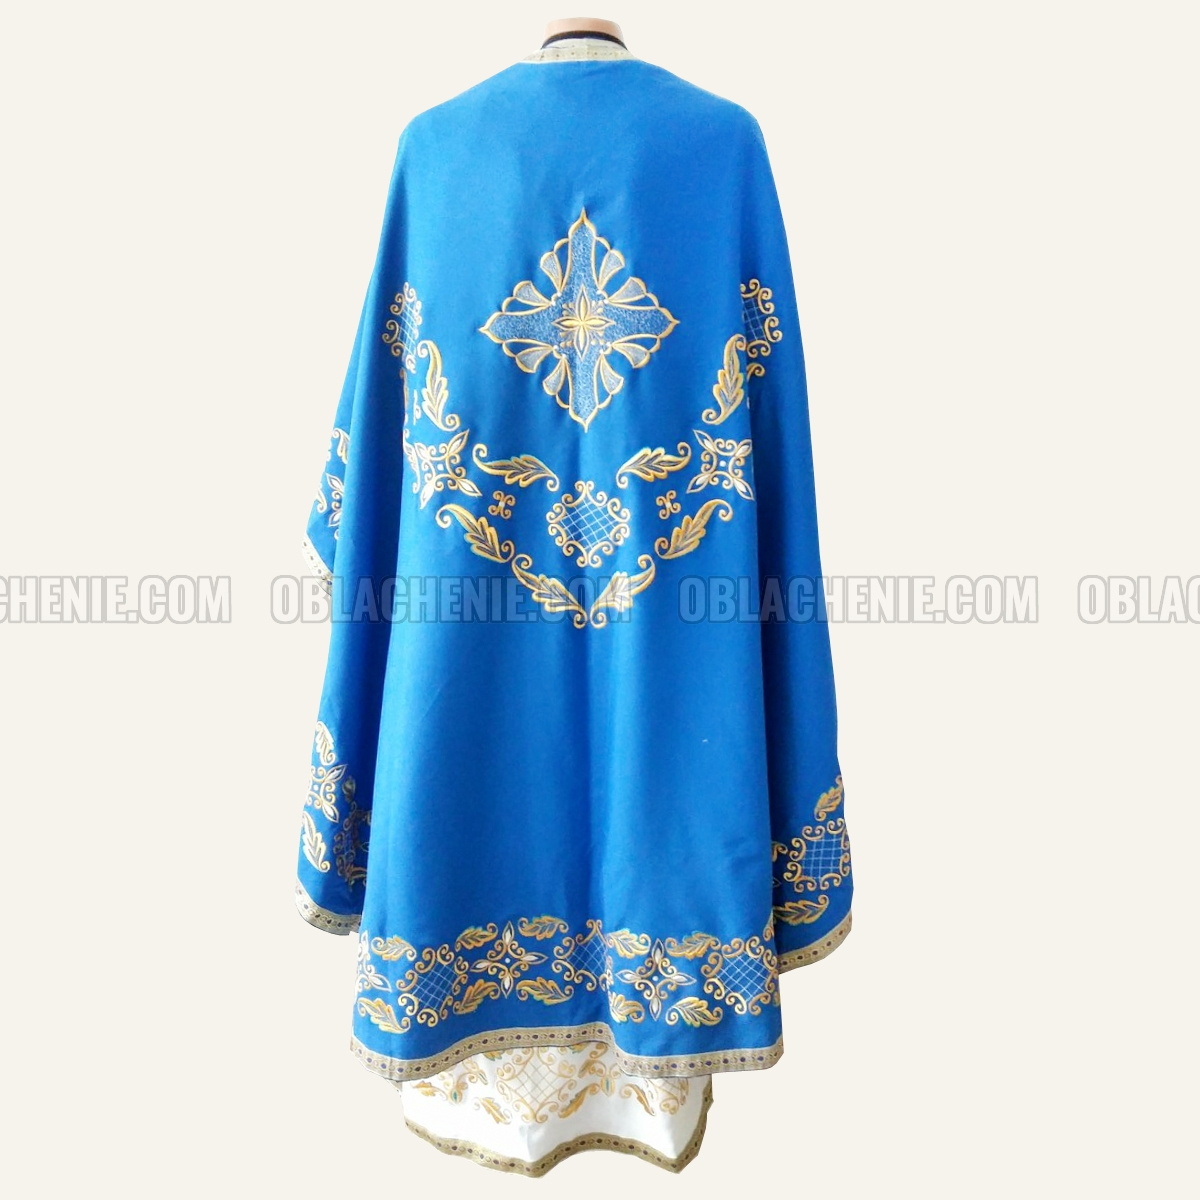 Embroidered priest's vestments 10246